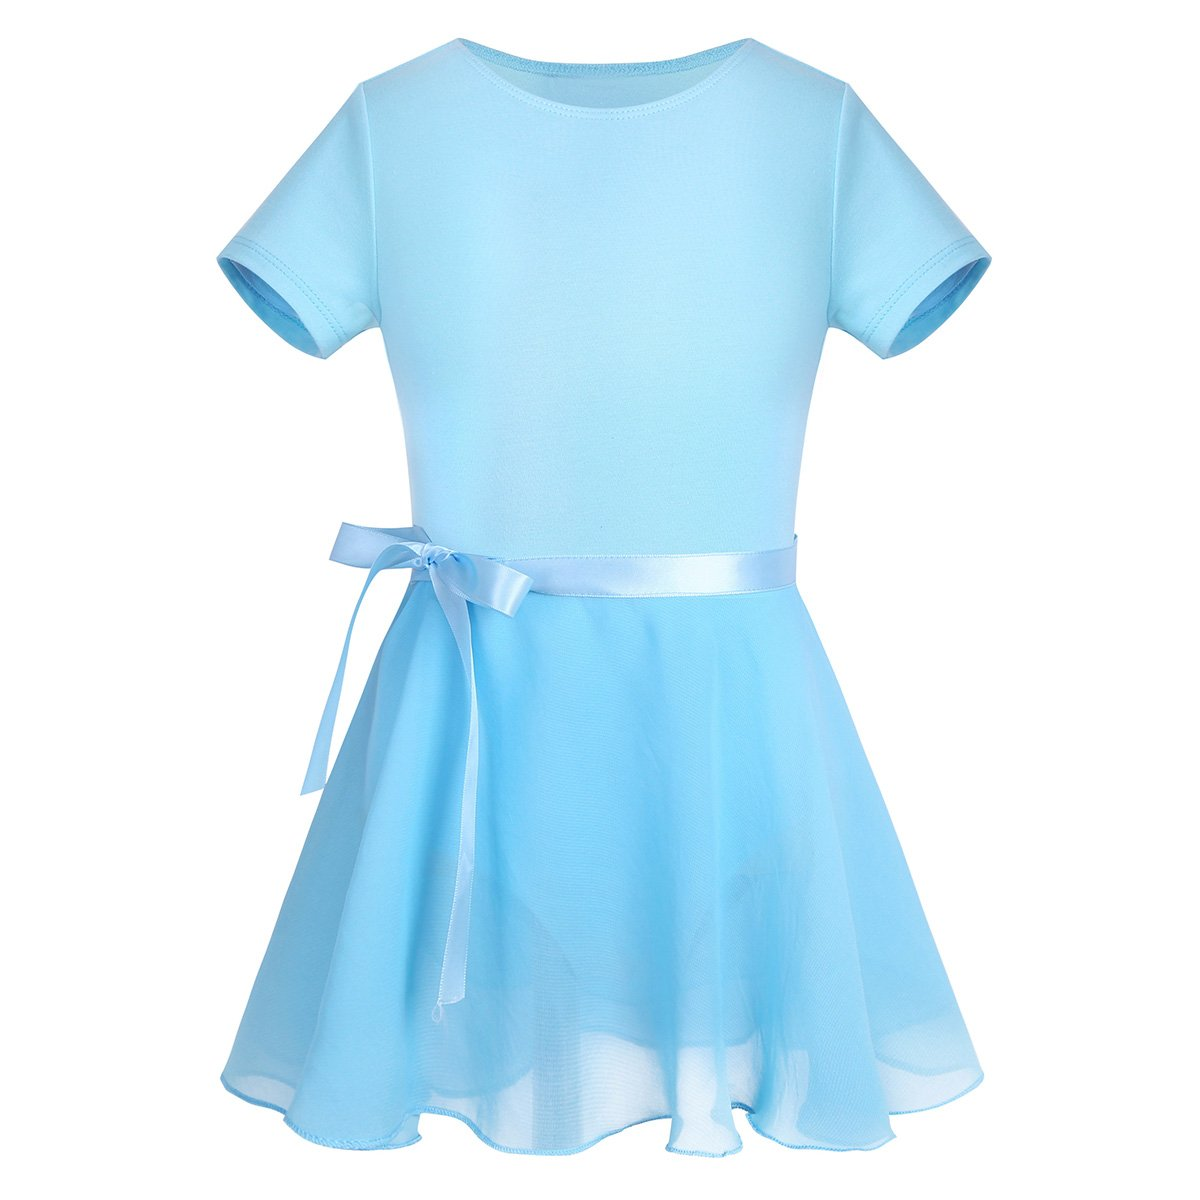 CHICTRY Girls Kids Basic Team Short Sleeved Wrap-Round Skirt Leotard Dance Ballet Tutu Dress